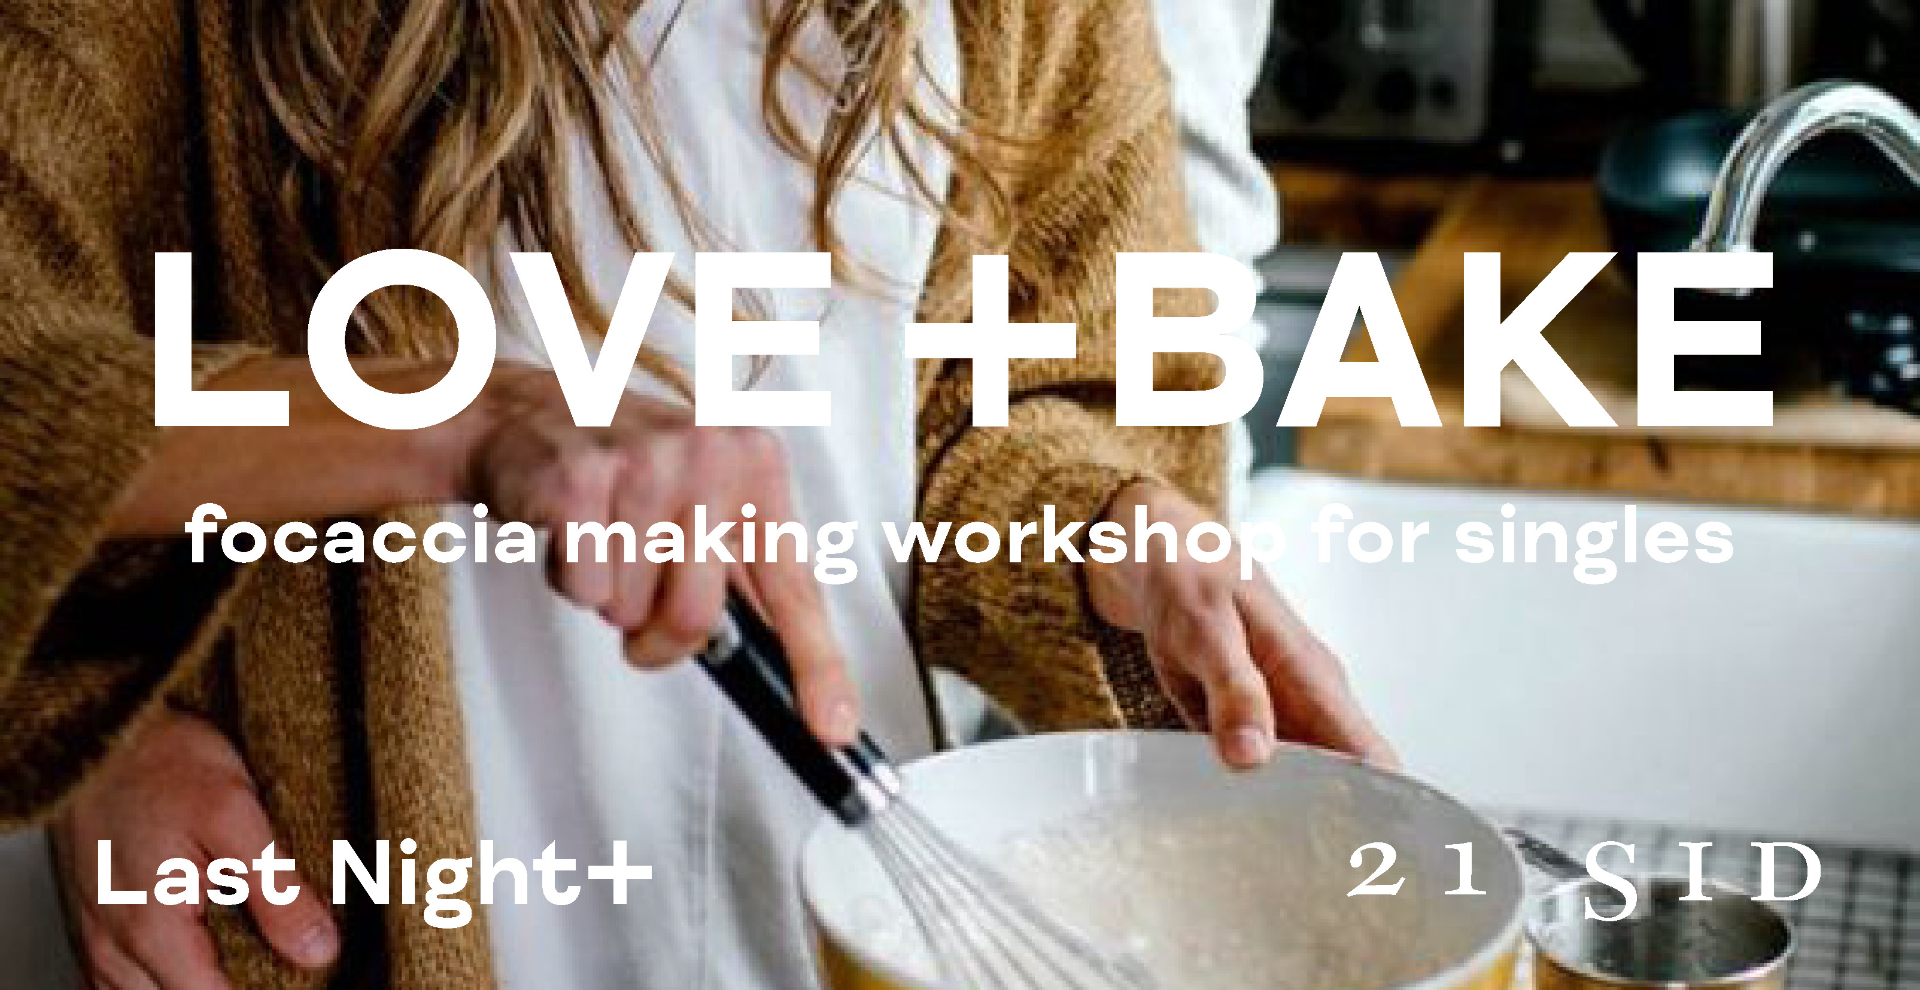 Last Night + SID21 - focaccia making workshop for singles (30's+)